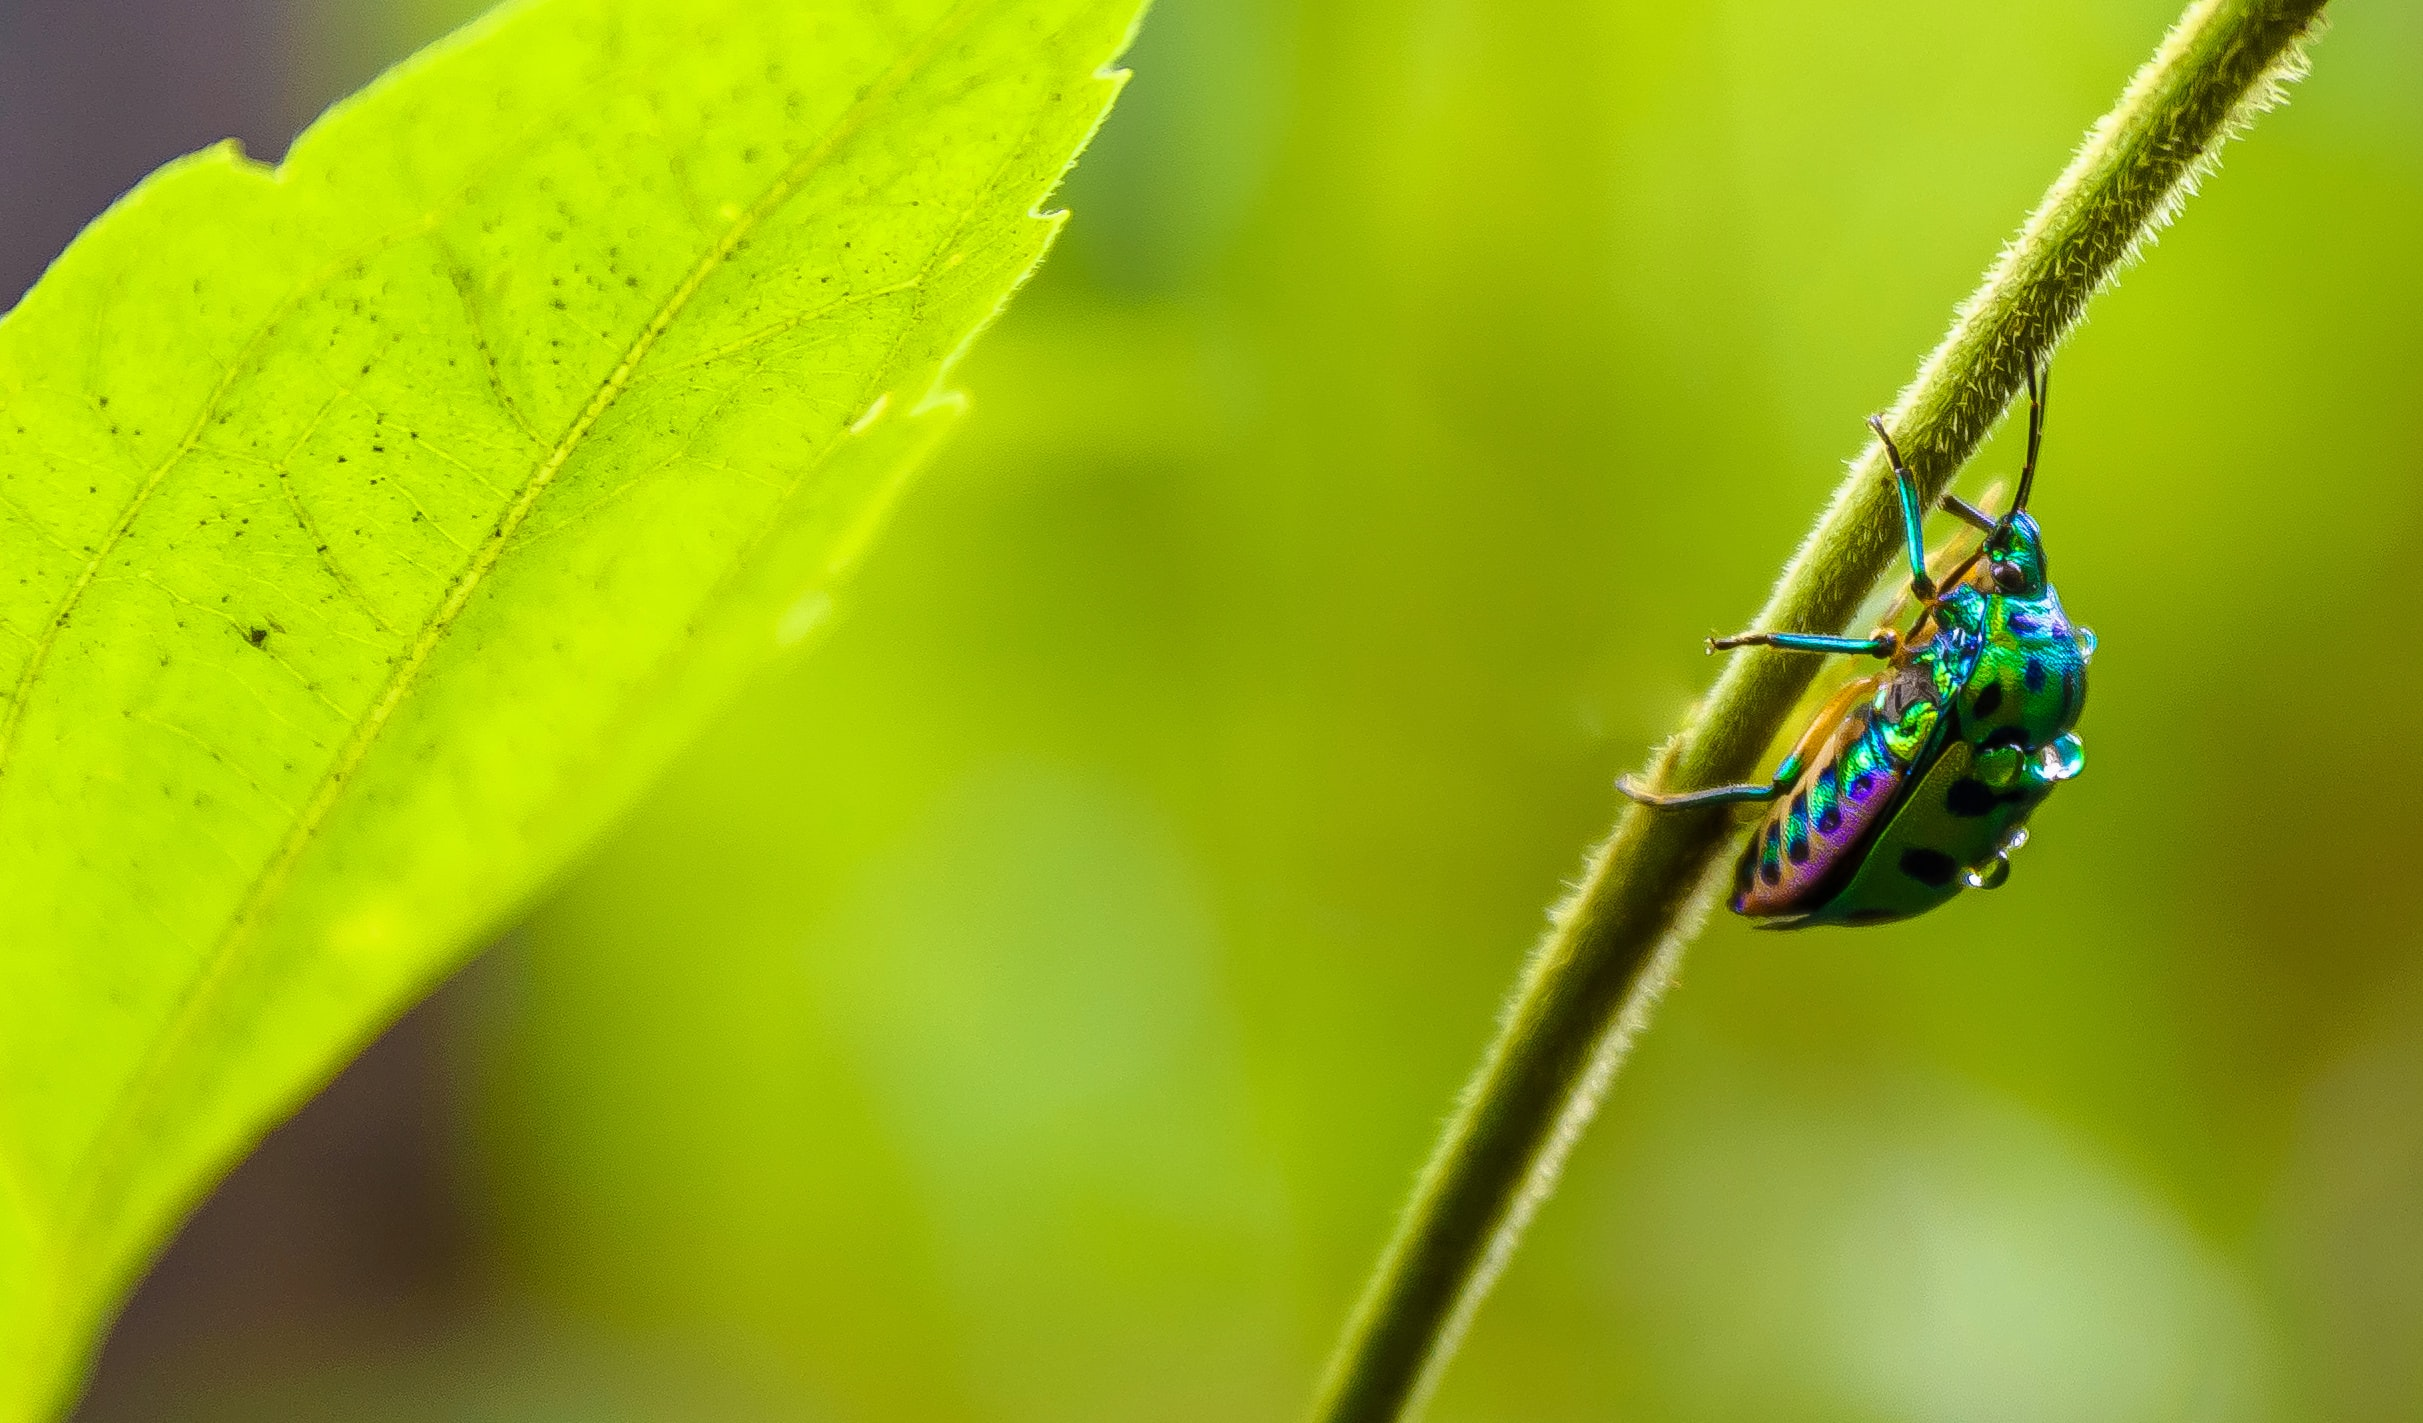 irisdescent insect on leaf branch